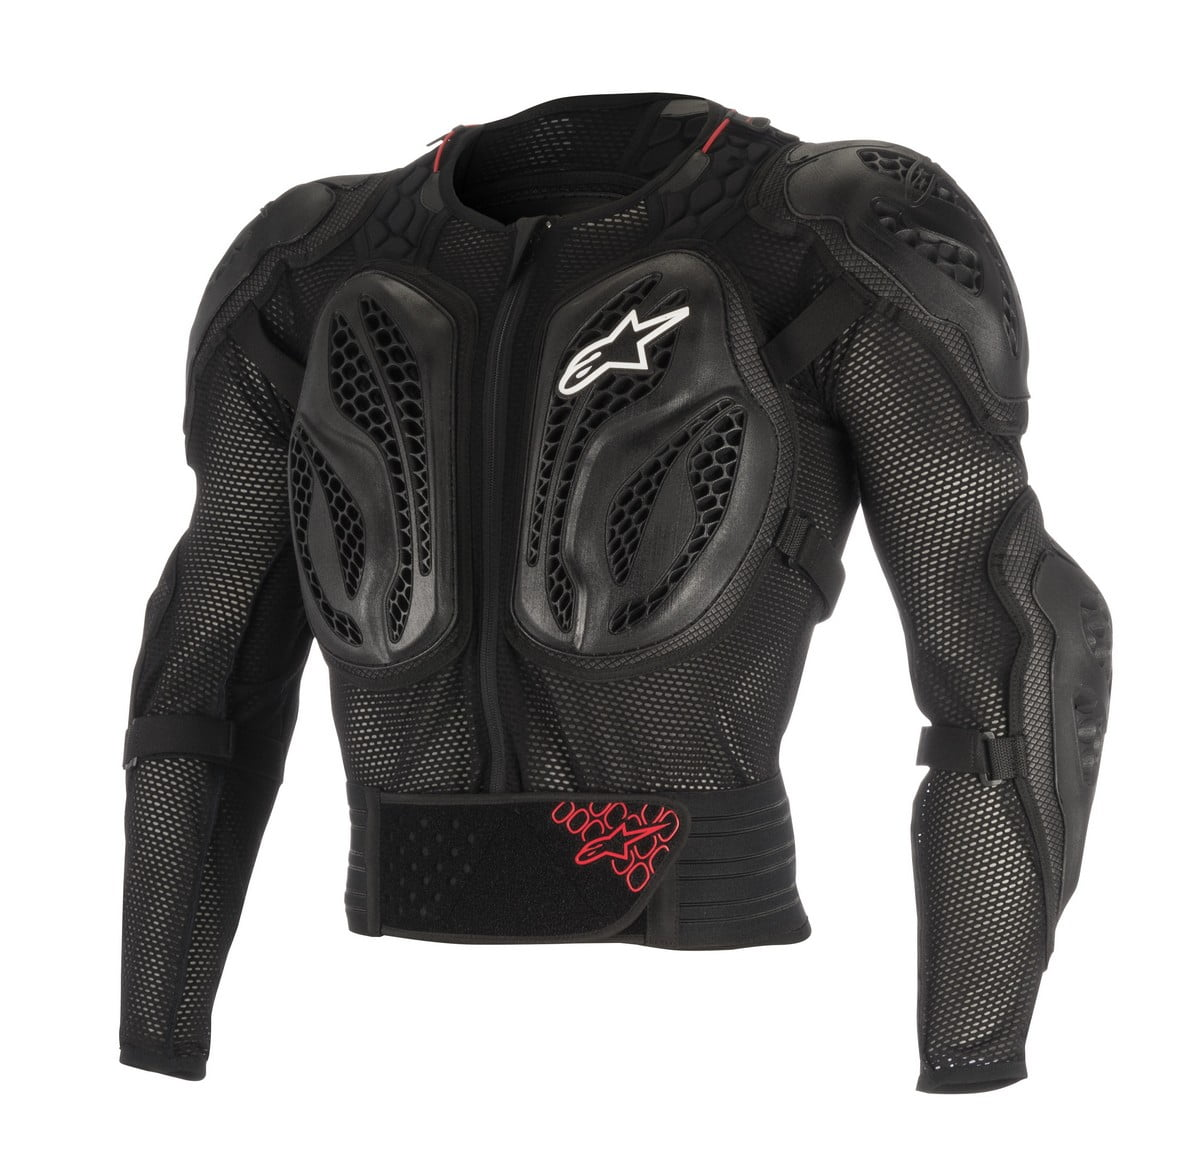 6546818_13_Youth Bionic Action jacket_BlackRed